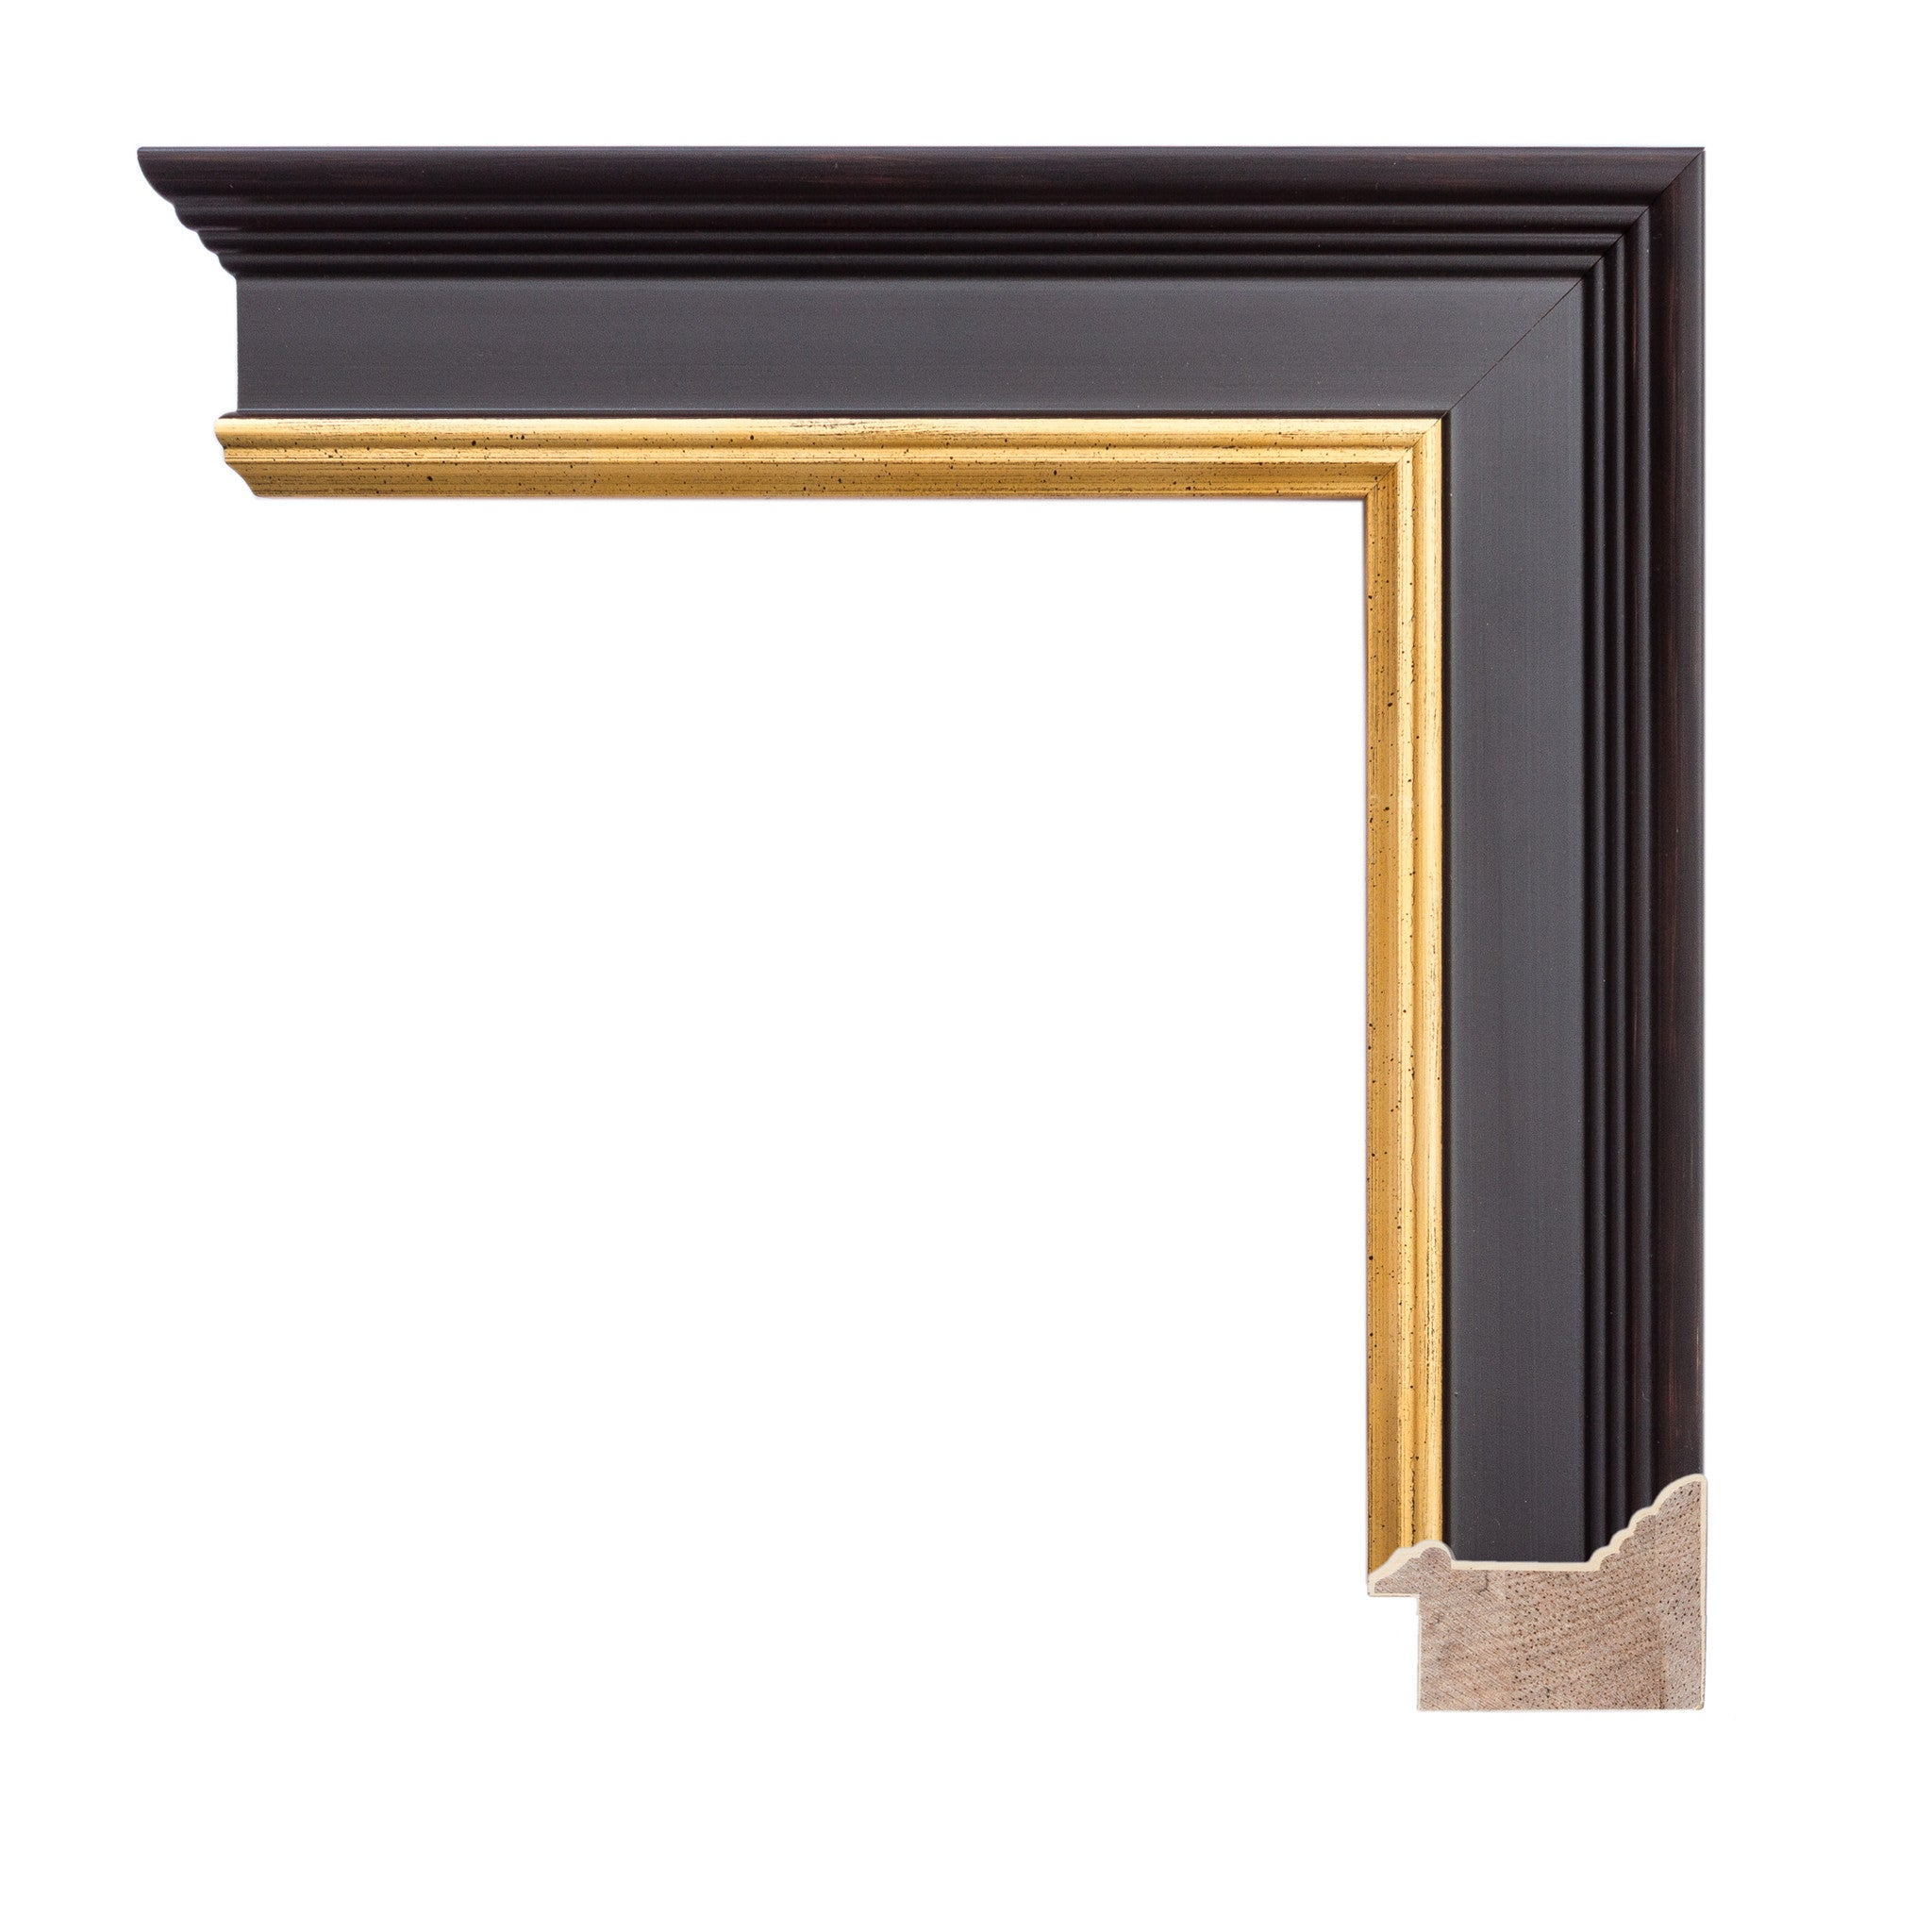 76902cfecbba Traditional Black Frame - Wholesale Frame Company